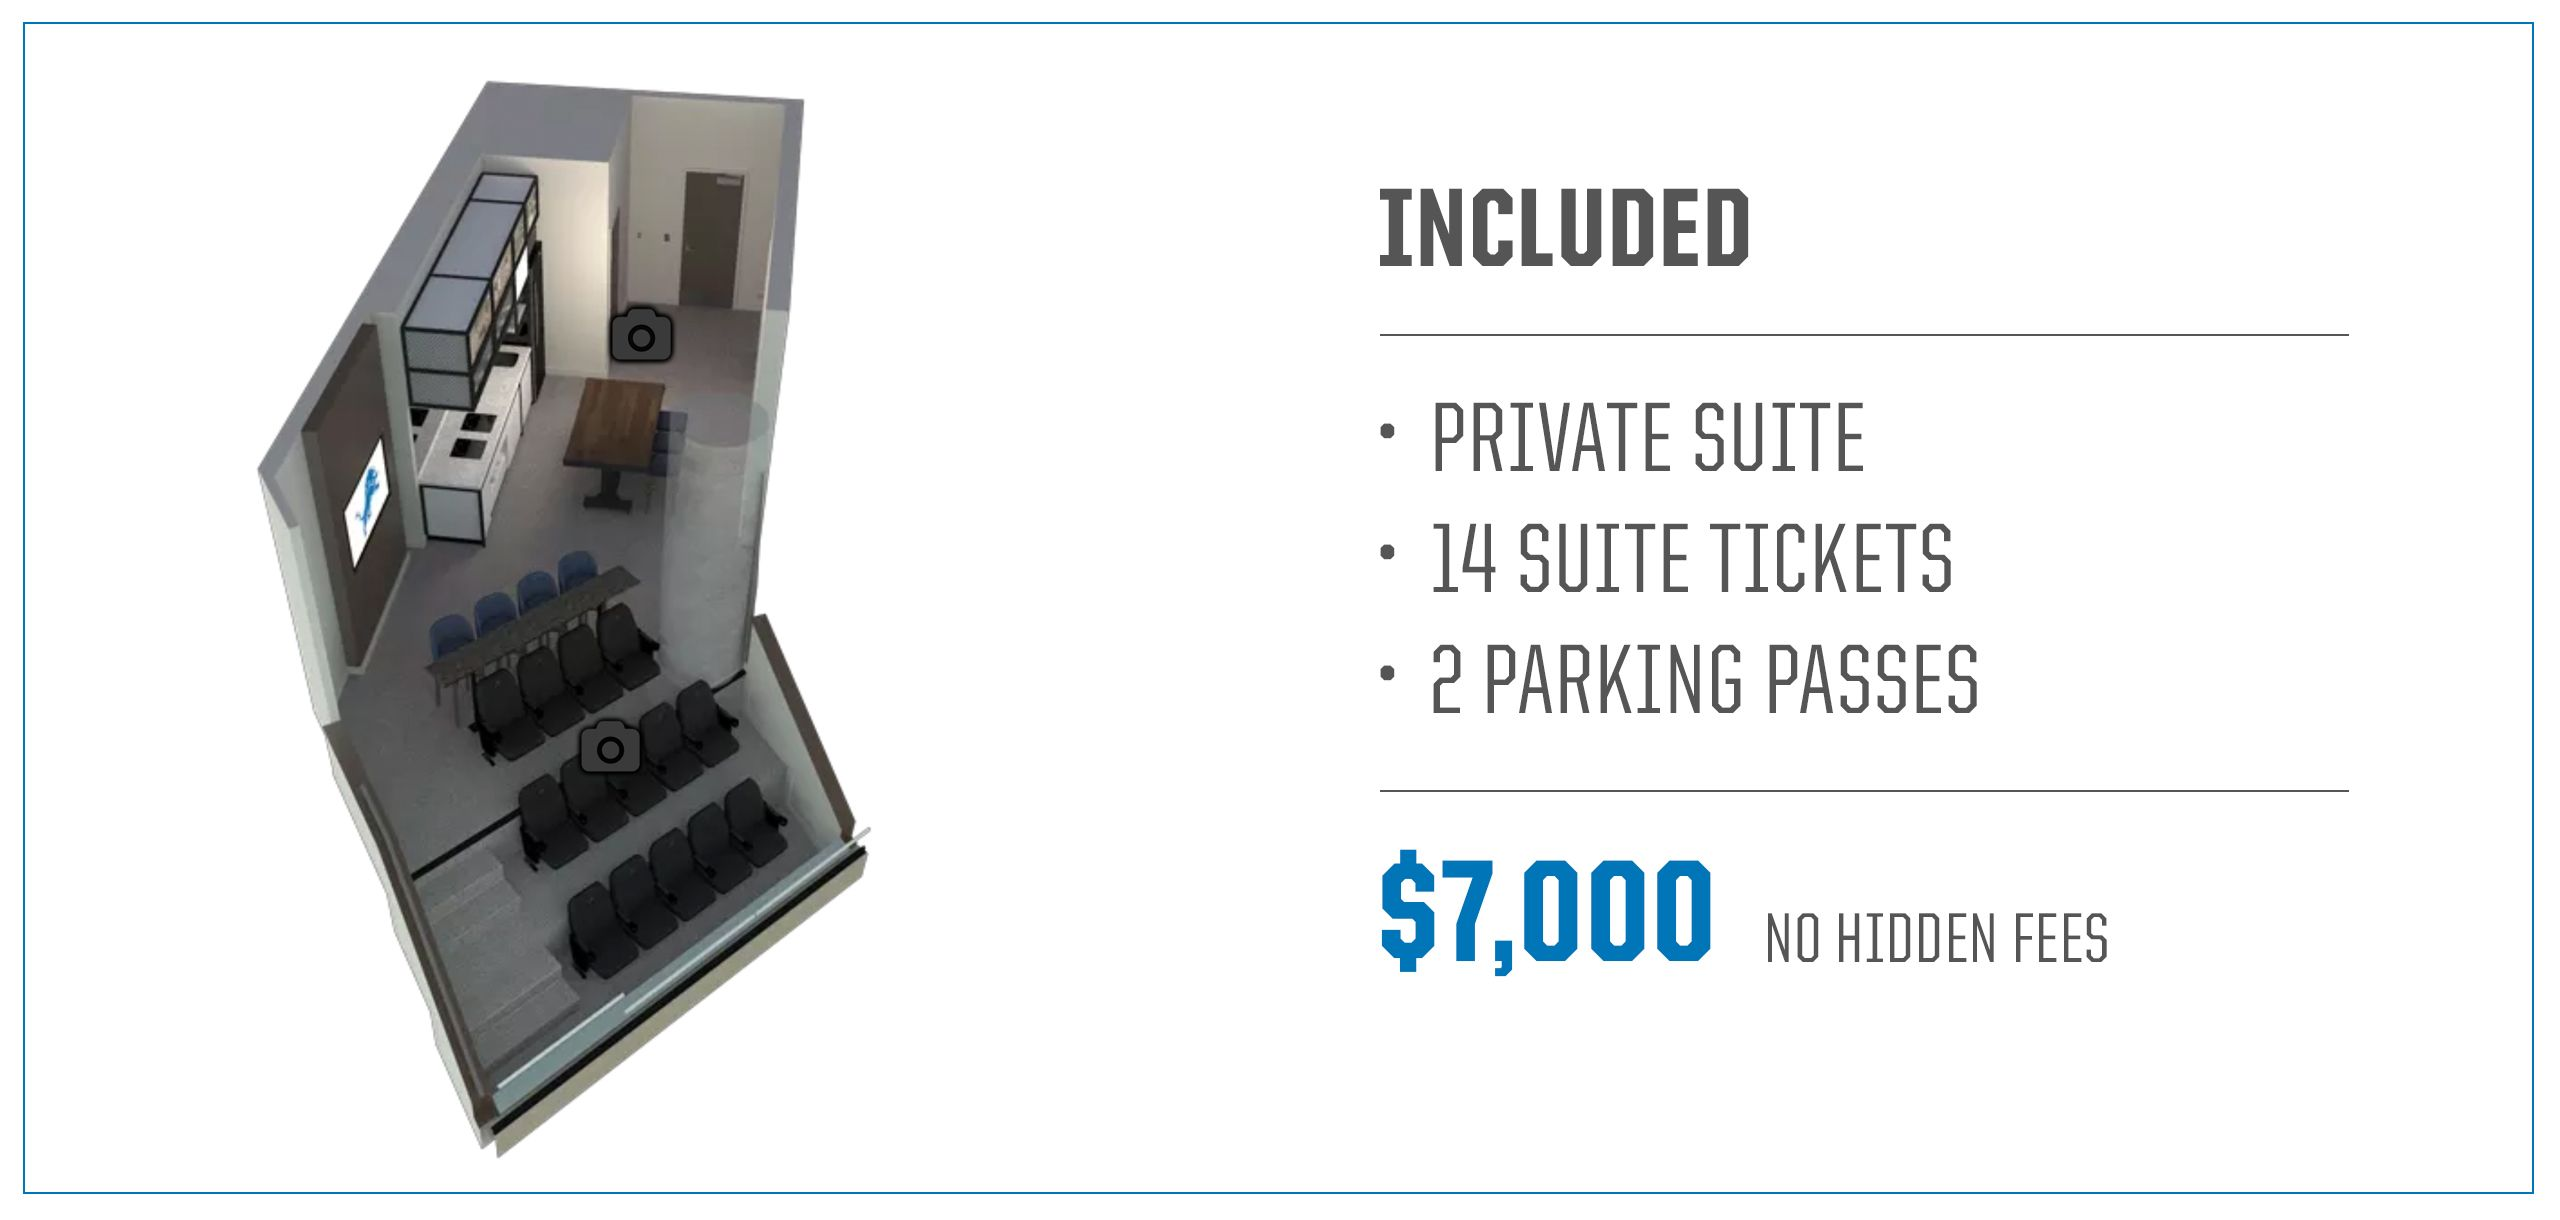 suite-purchase-information-map-501-chesney